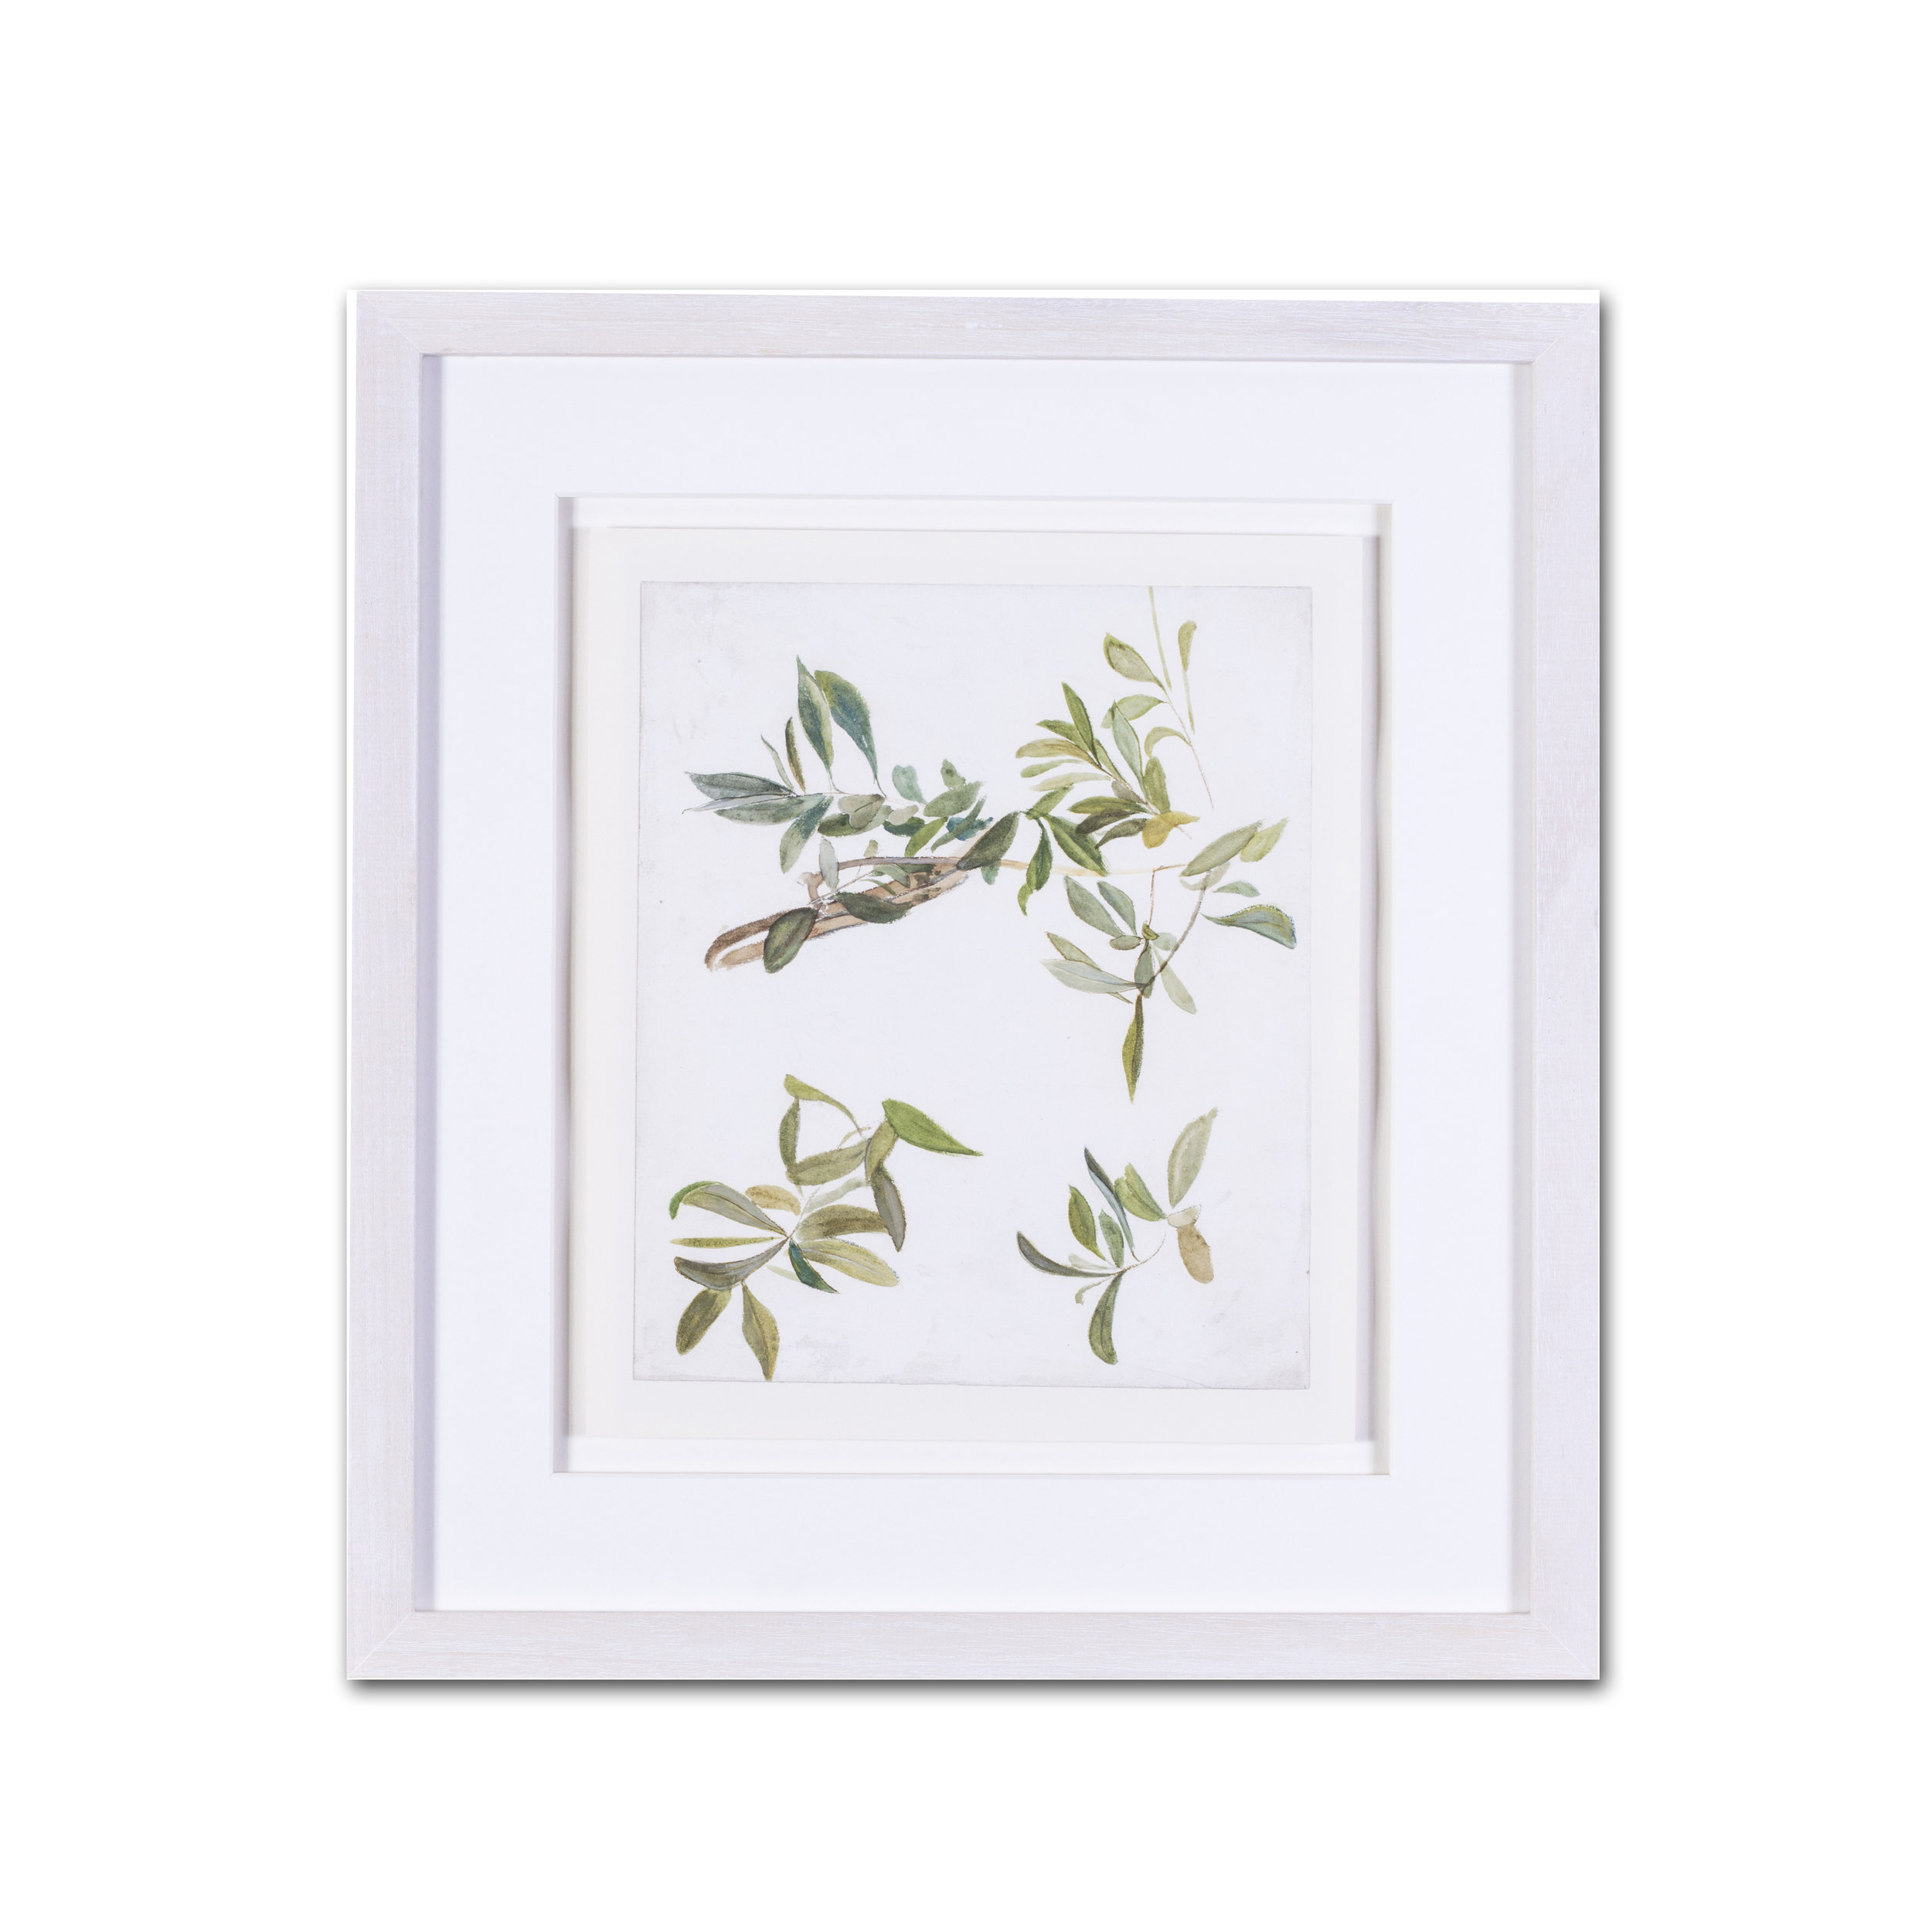 Evelyn de Morgan  Olive branches  Price: £1,900